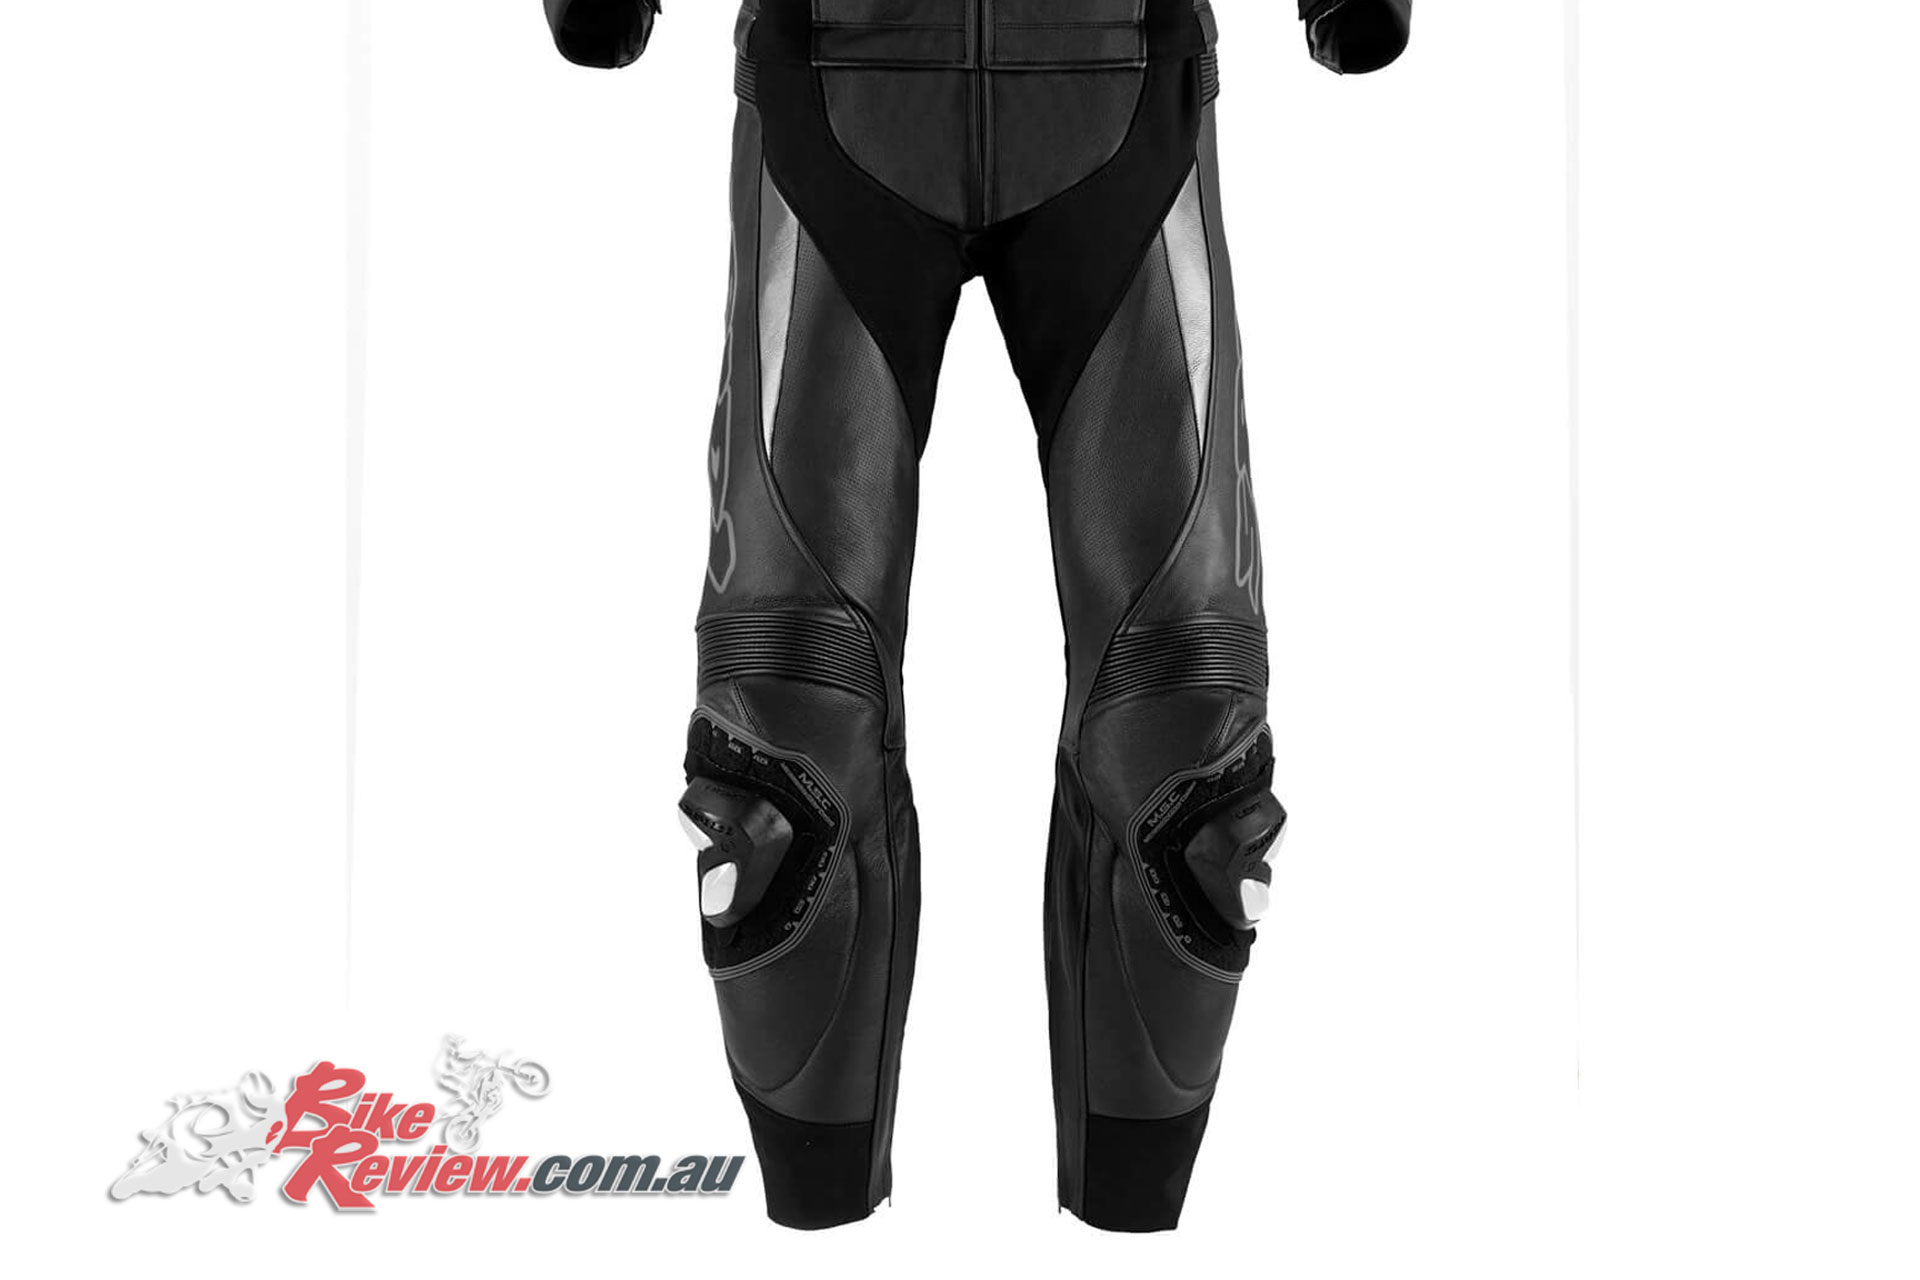 Pants feature hip and knee armour, with stretch panels ensuring a good fit